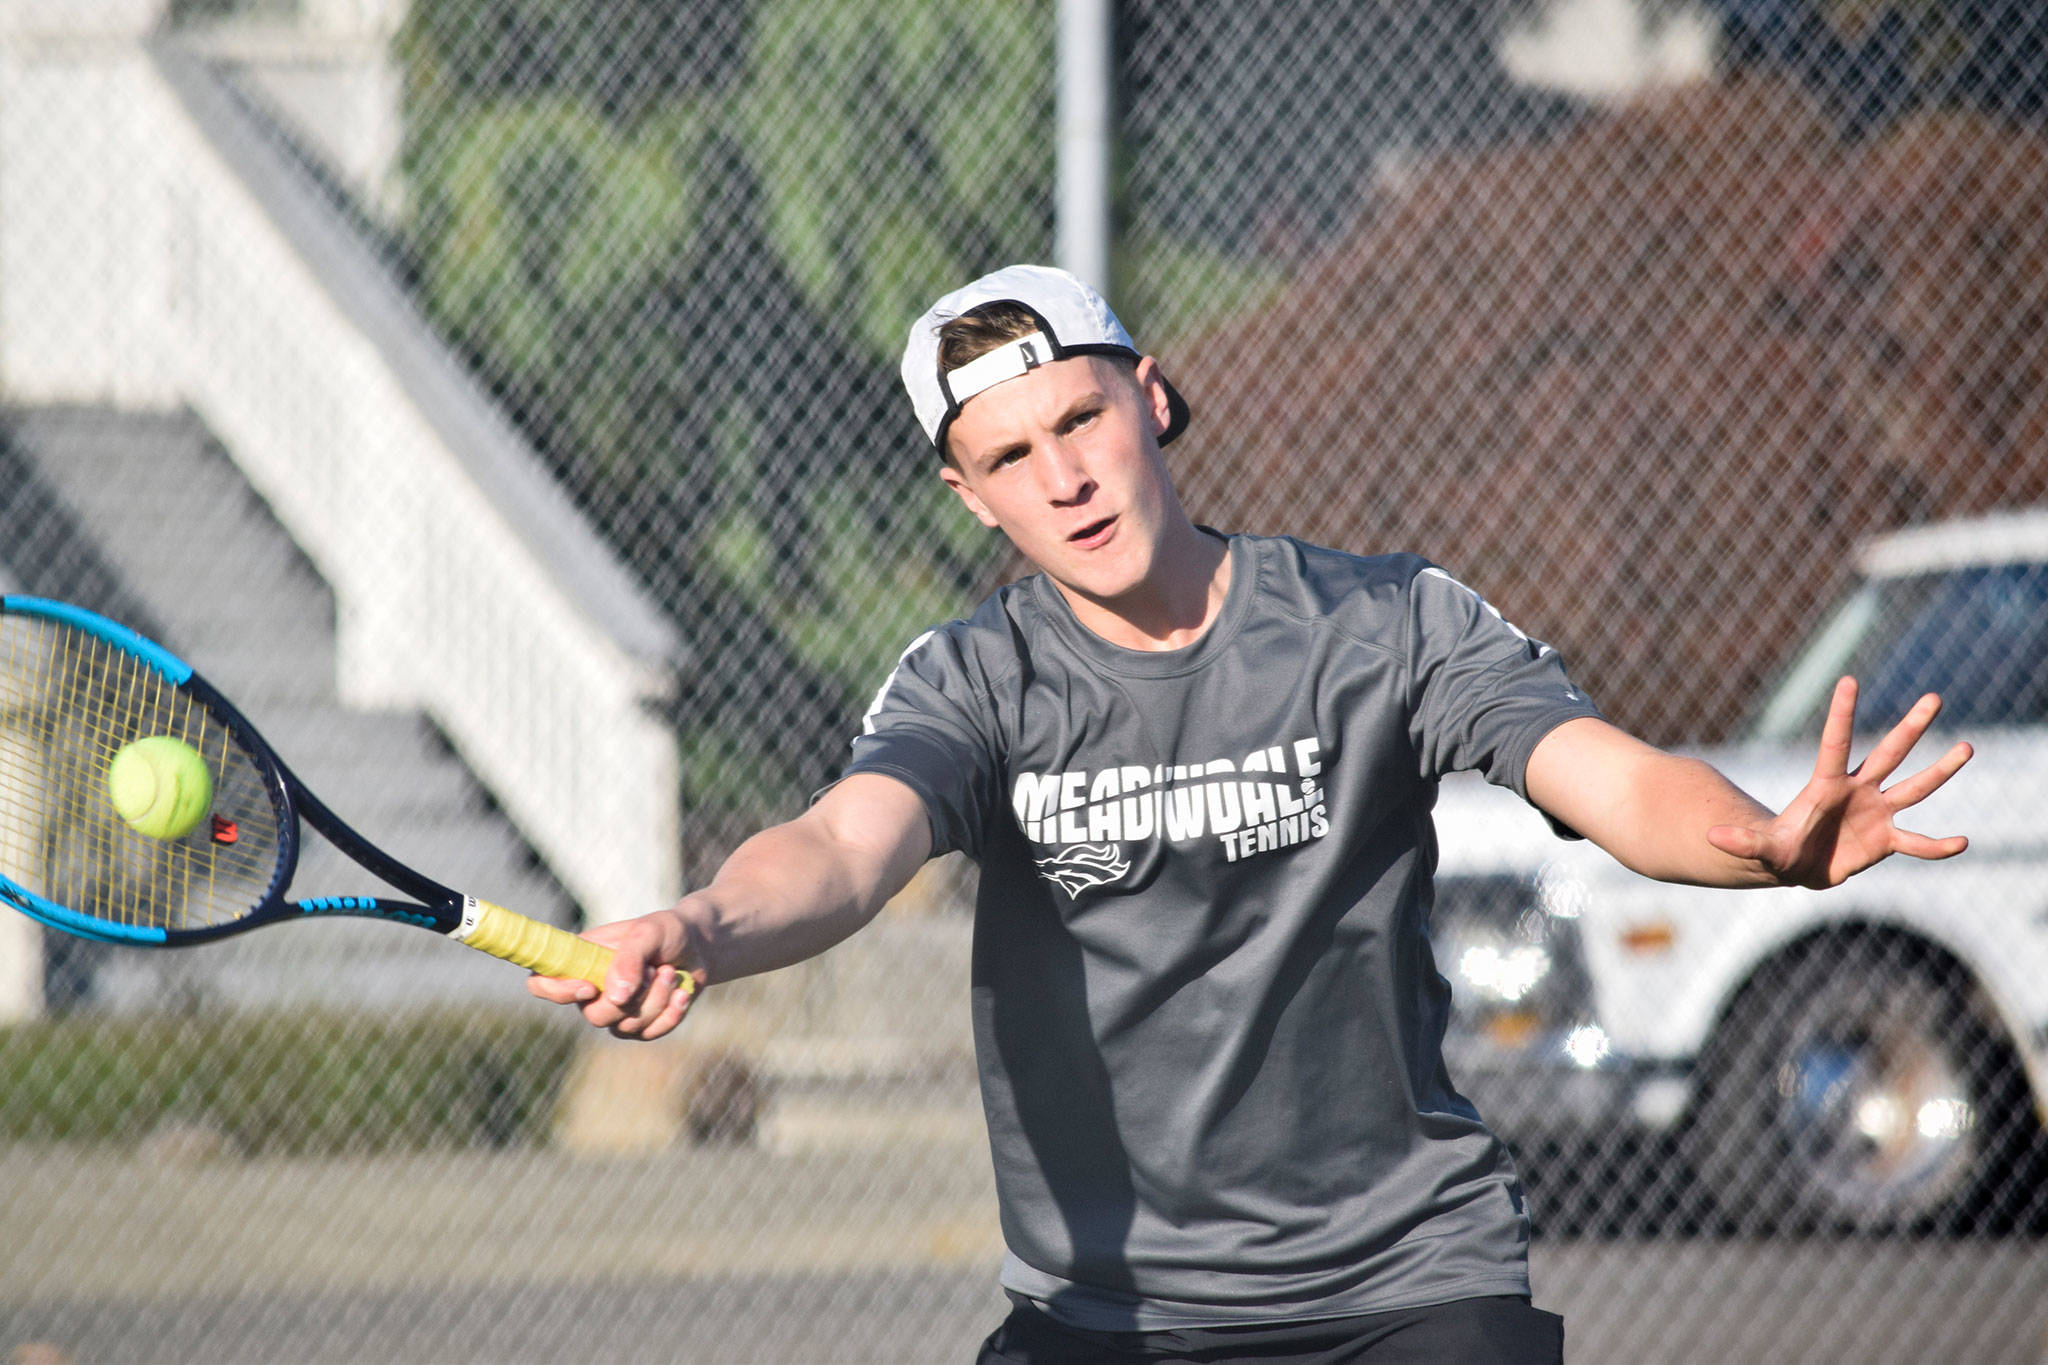 Meadowdale's Ben Fahey plays doubles against Marysville Pilchuck on Thursday, Oct. 10 at Totem Middle School. (Katie Webber / The Herald)